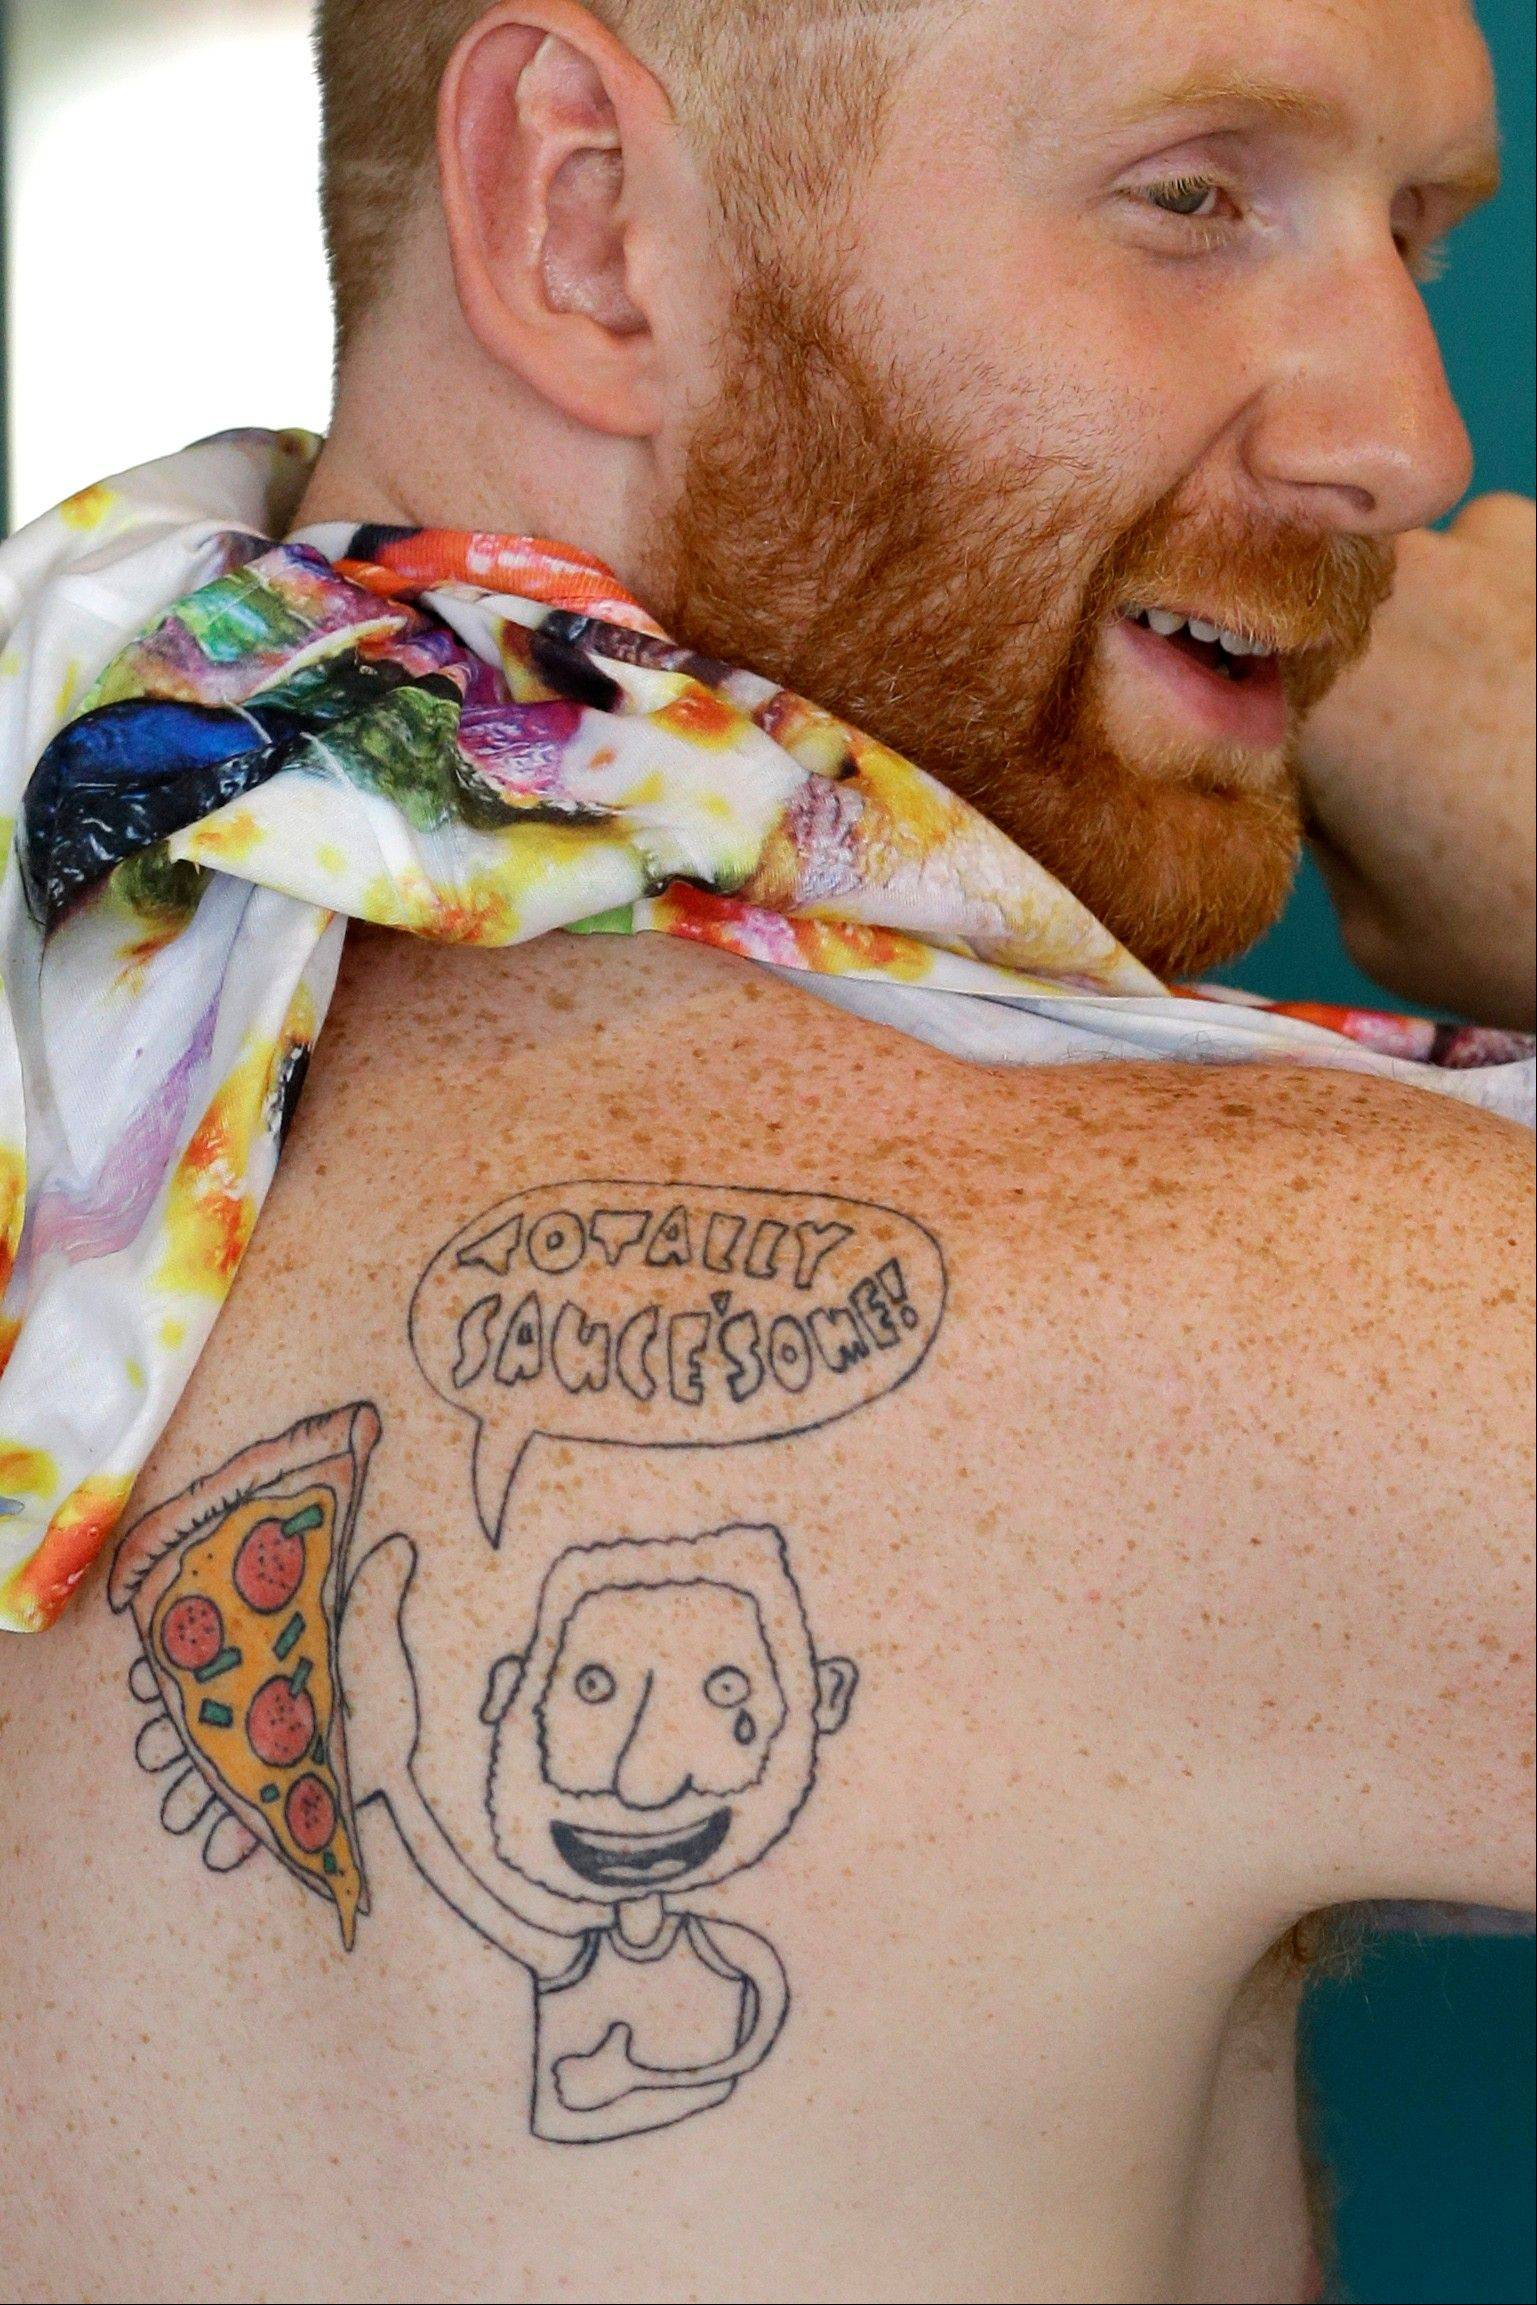 Brian Dwyer displays his tattoo during an interview at Pizza Brain in Philadelphia.